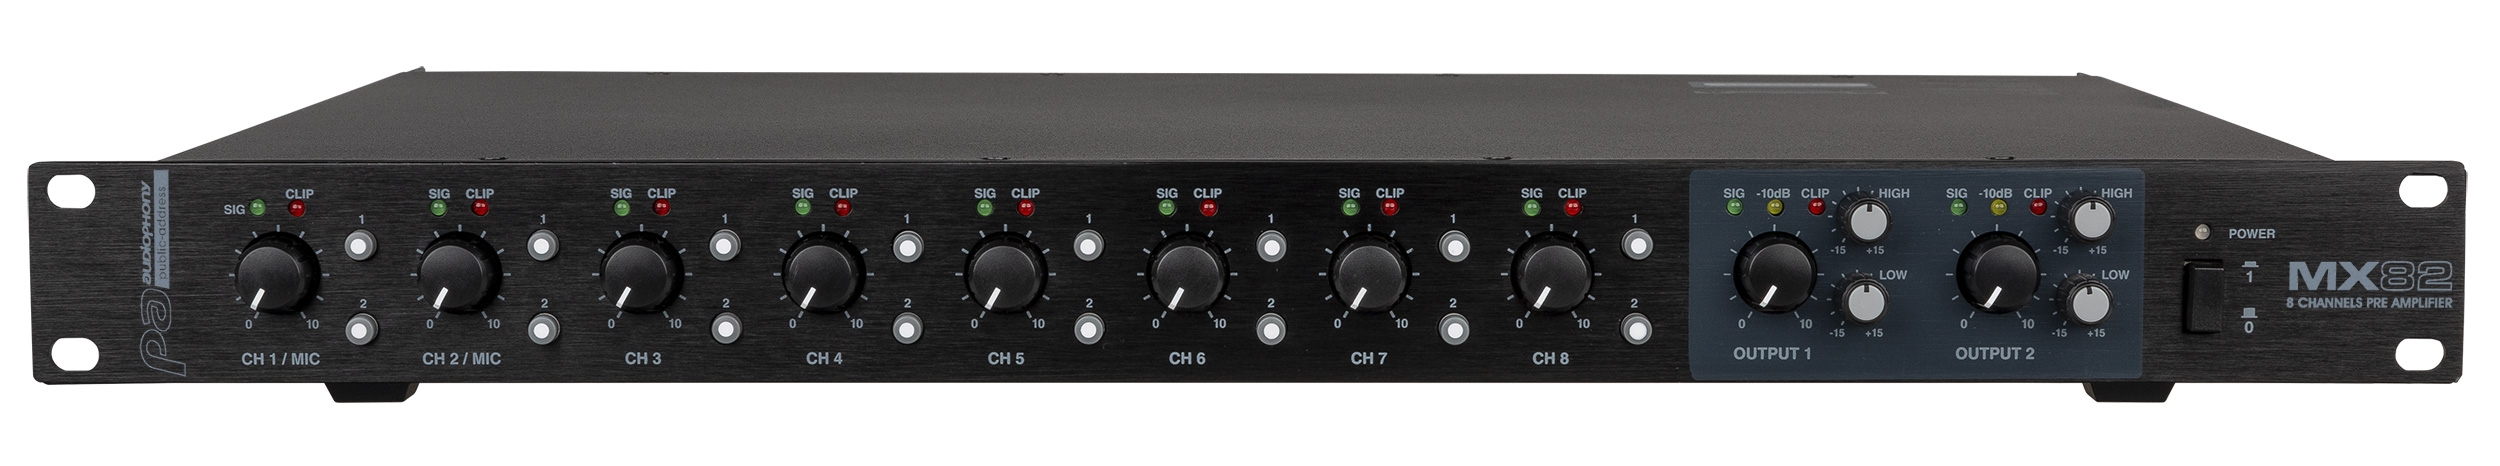 Mixer 1 unit 8 inputs / 2 stereo outputs with priority + Remote Mic